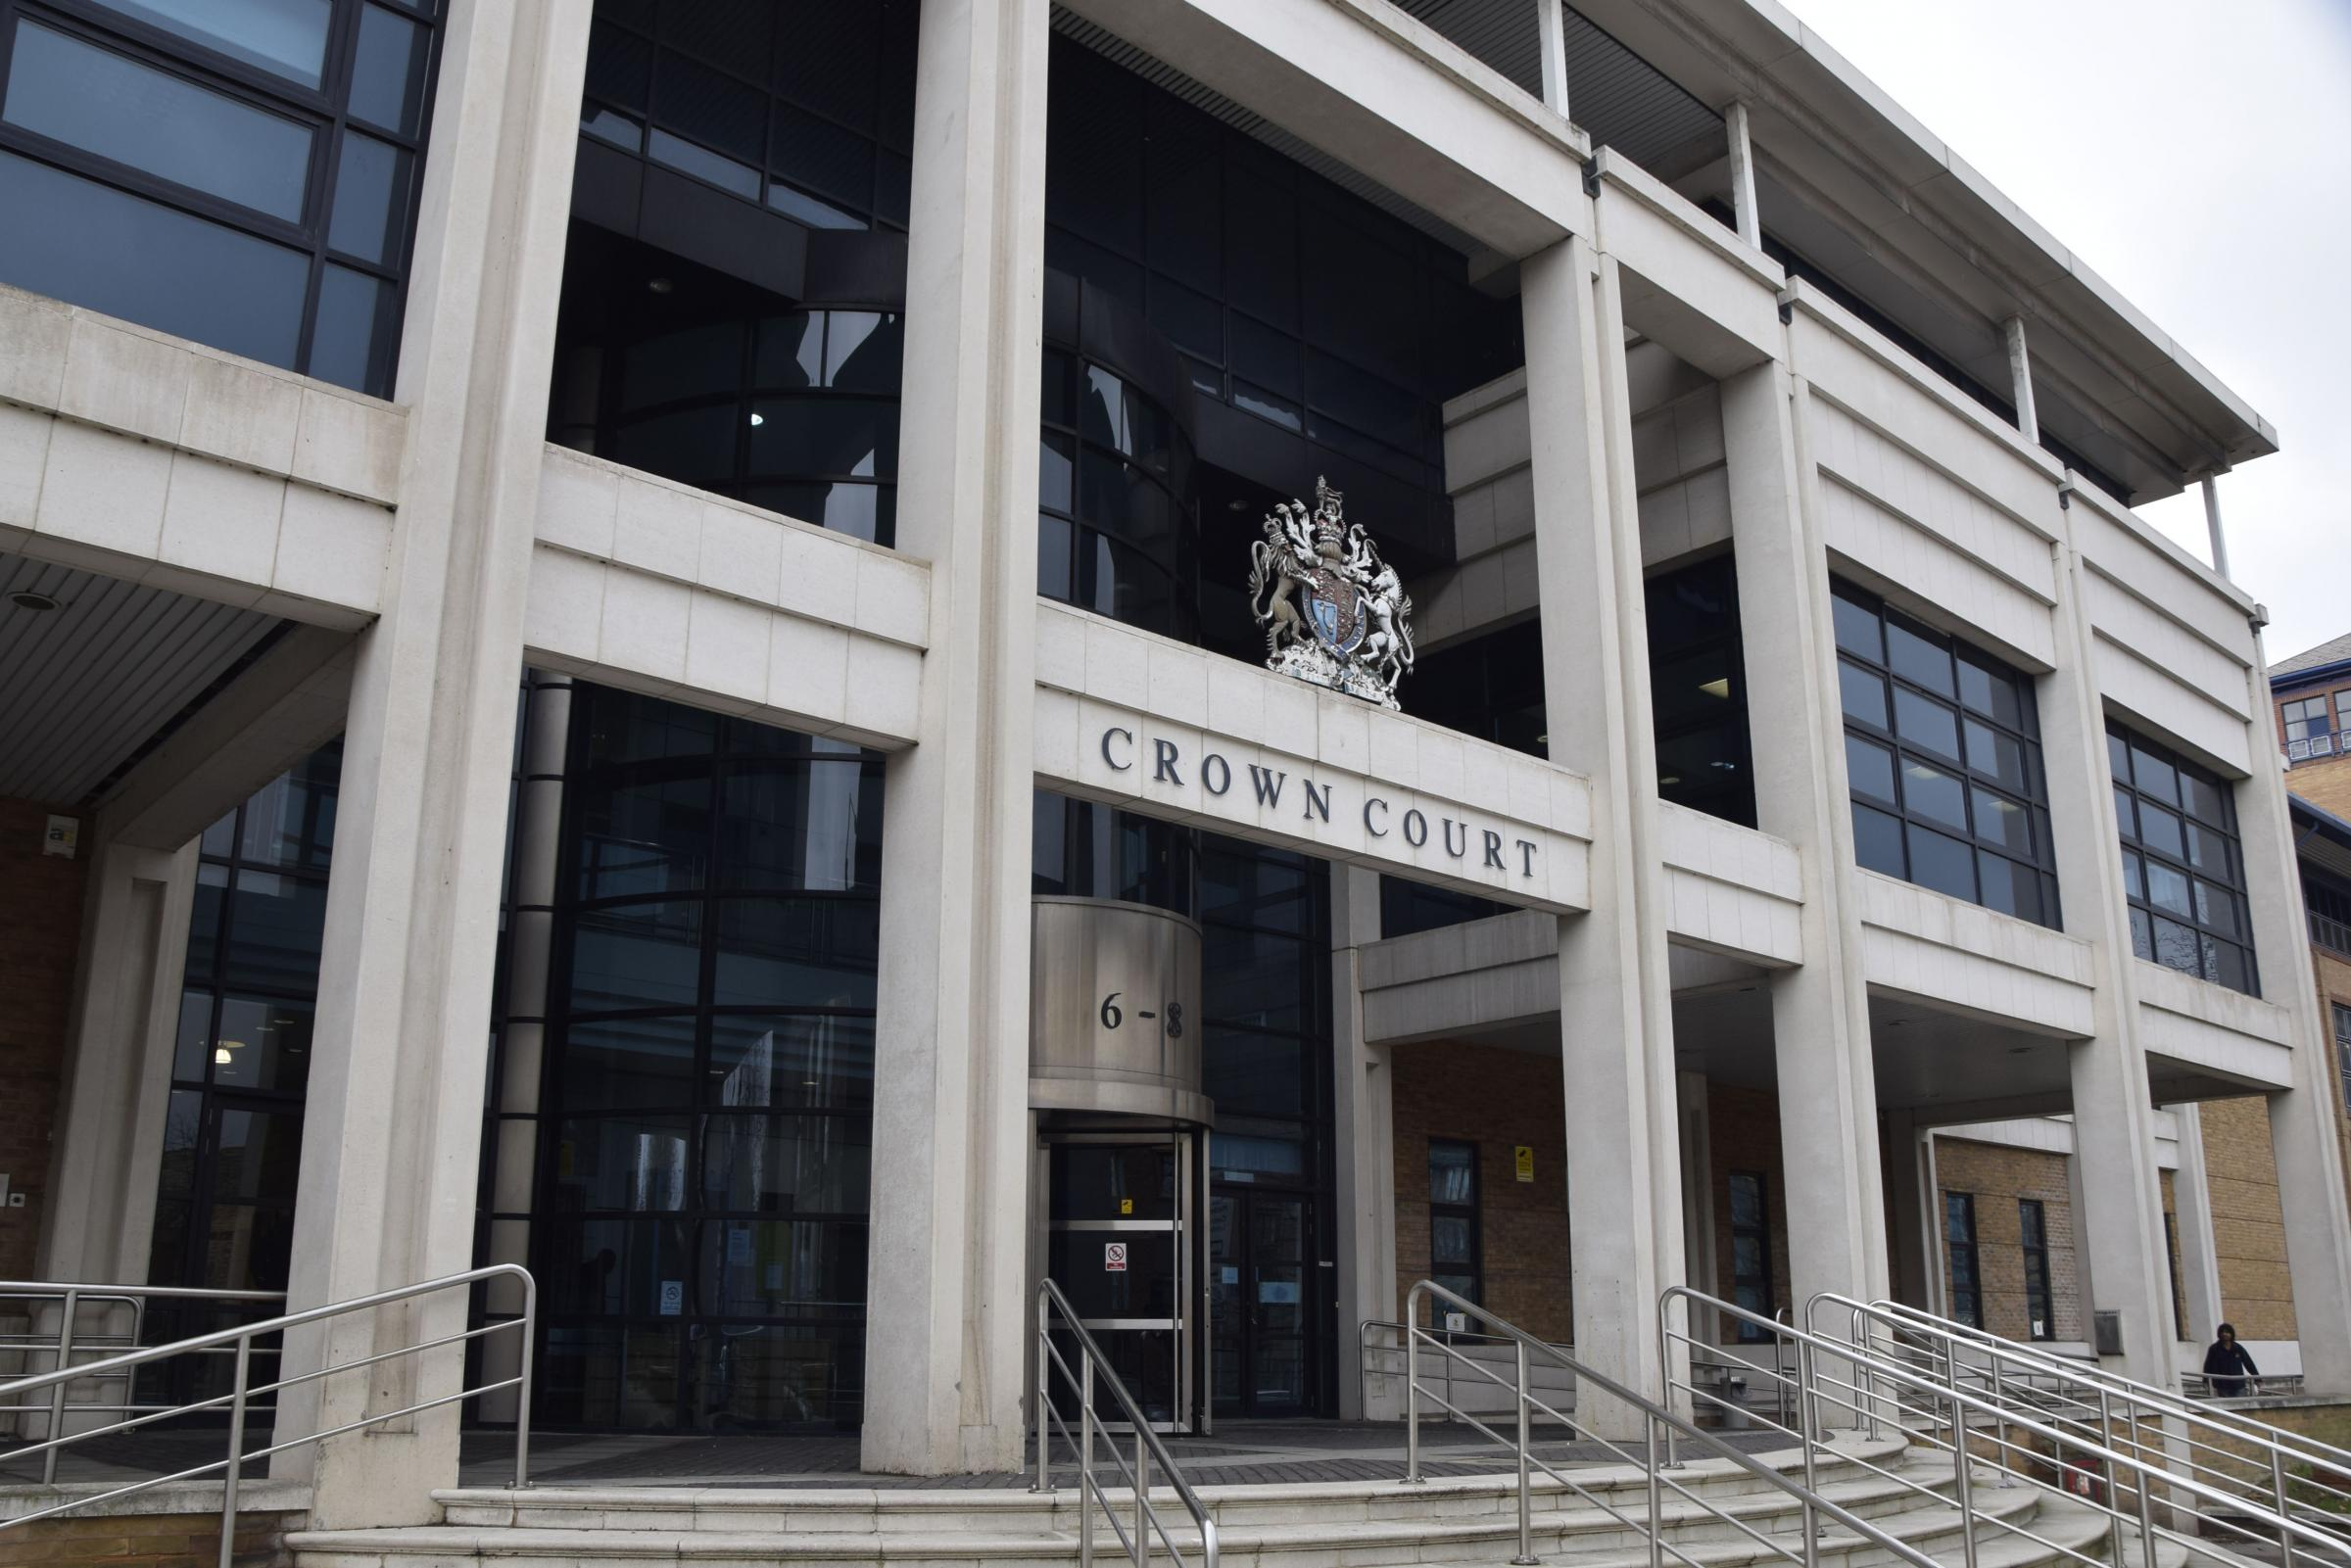 Cafe owner incited autistic boy to give oral sex in toilets on Christmas Eve, court hears